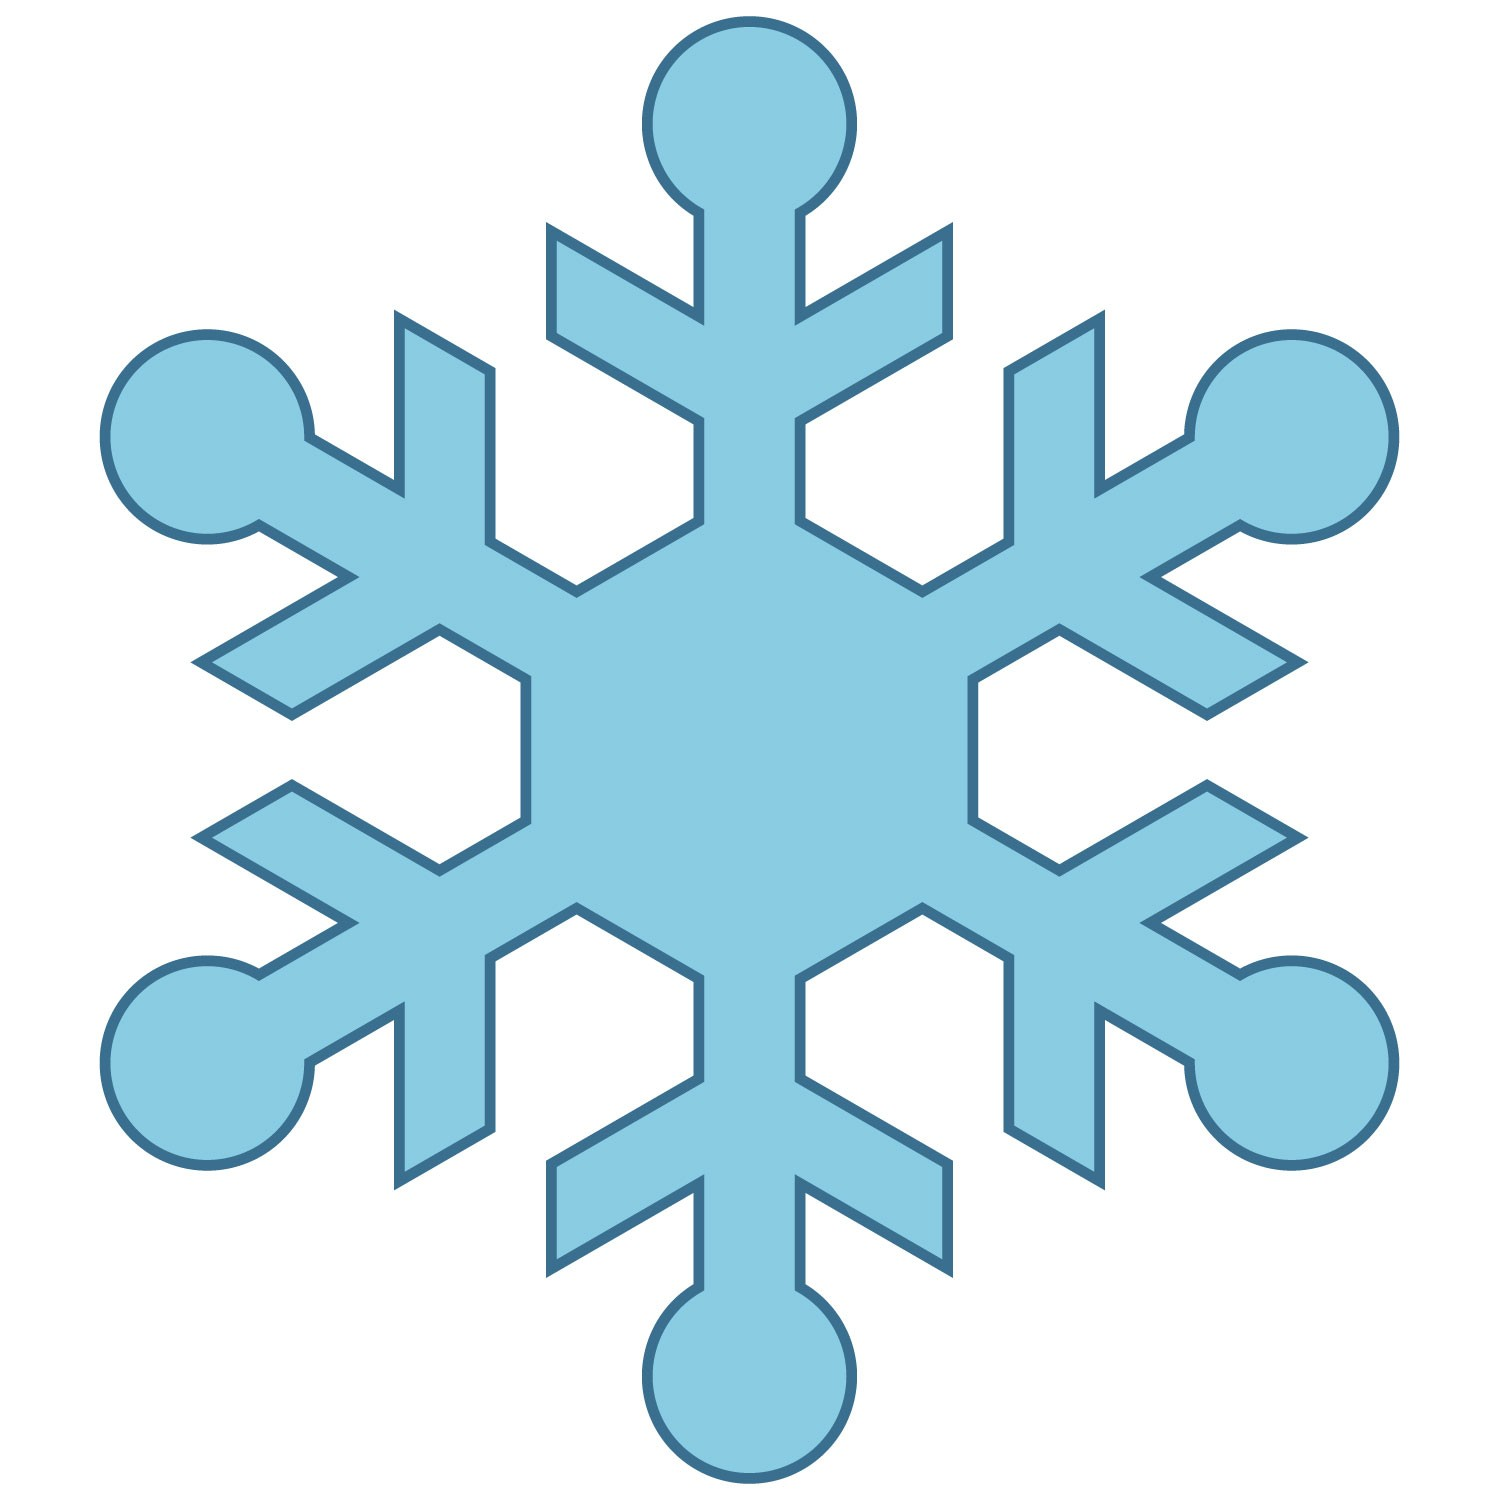 hight resolution of cute snowflake clipart snowman catching snowflakes clip art image